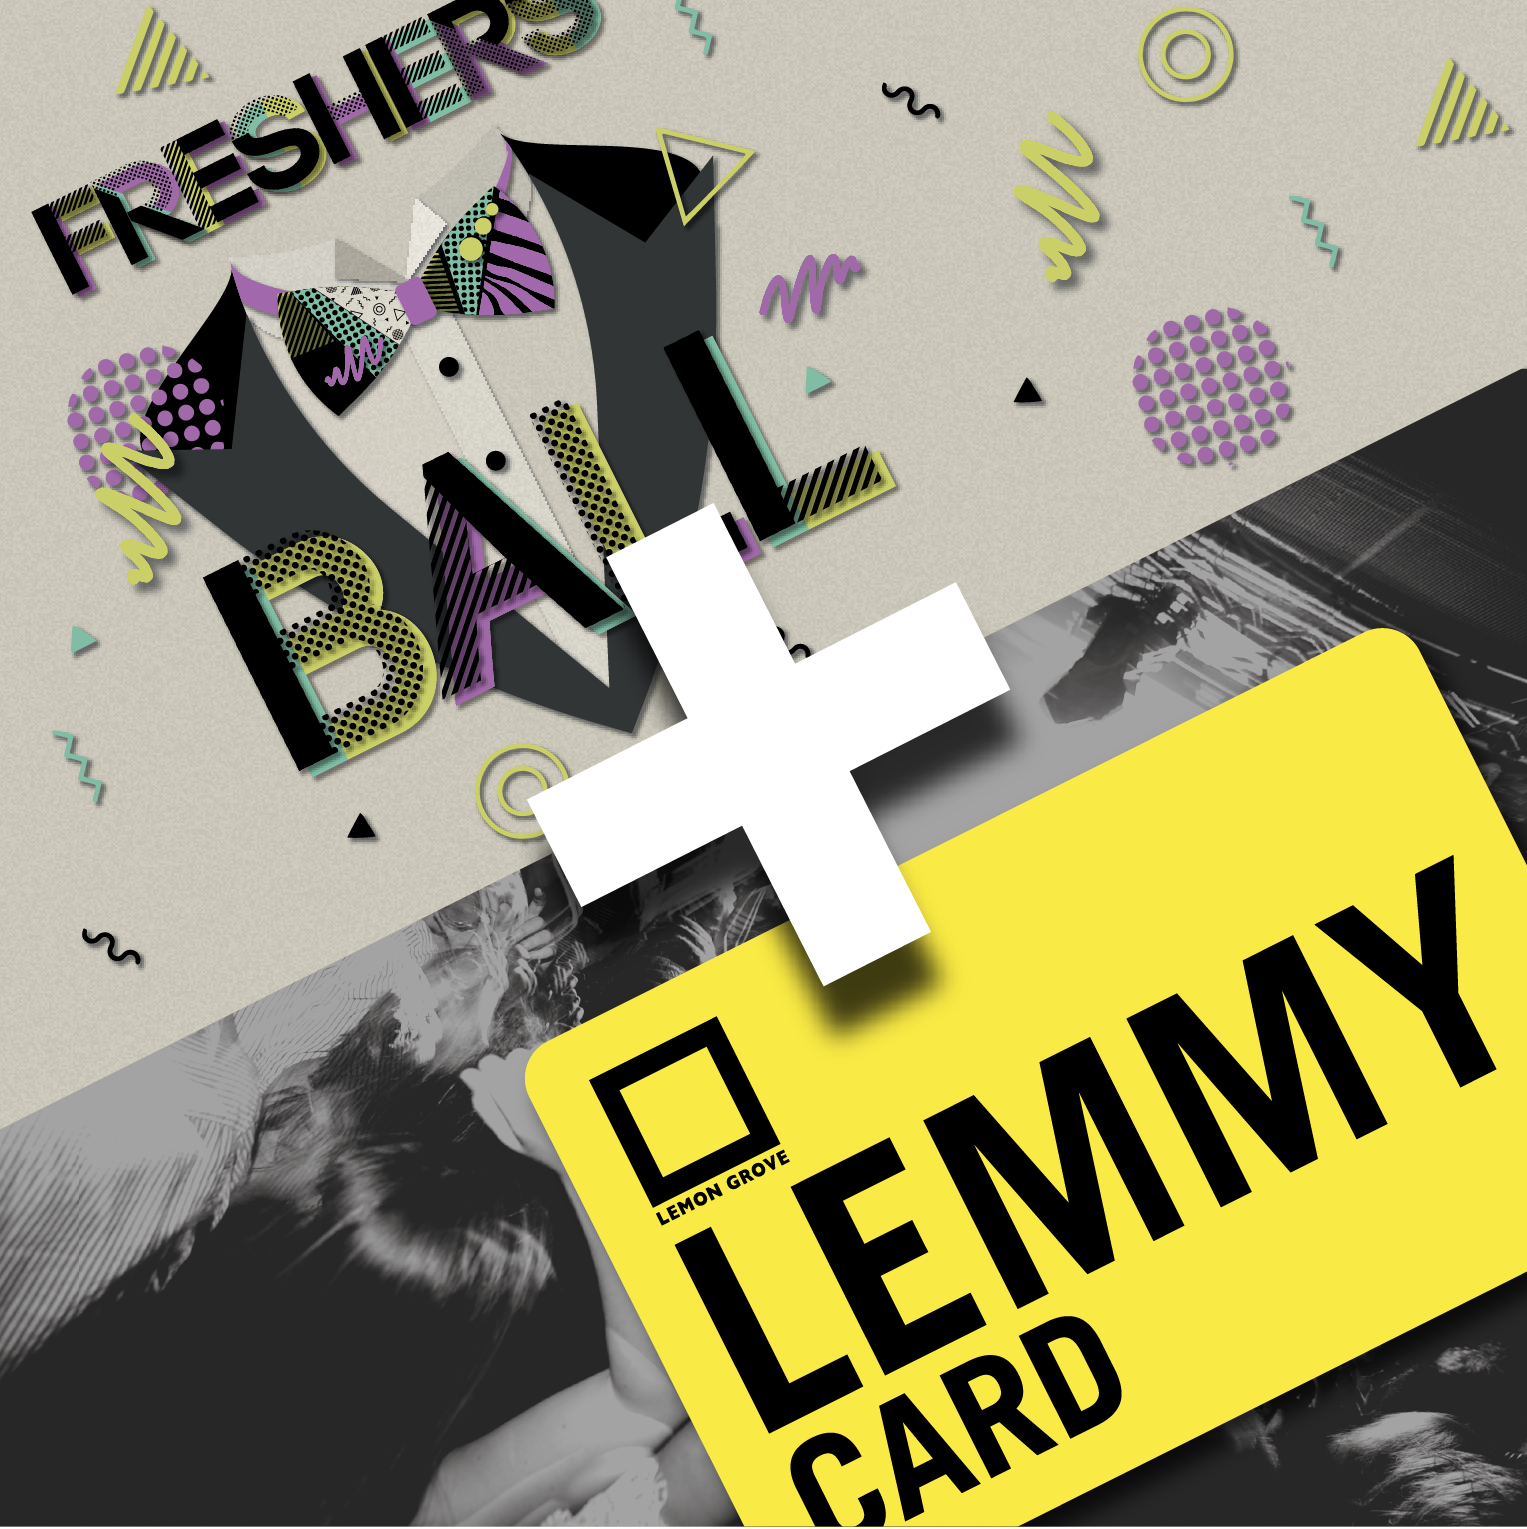 Freshers' ball and Lemmy Card